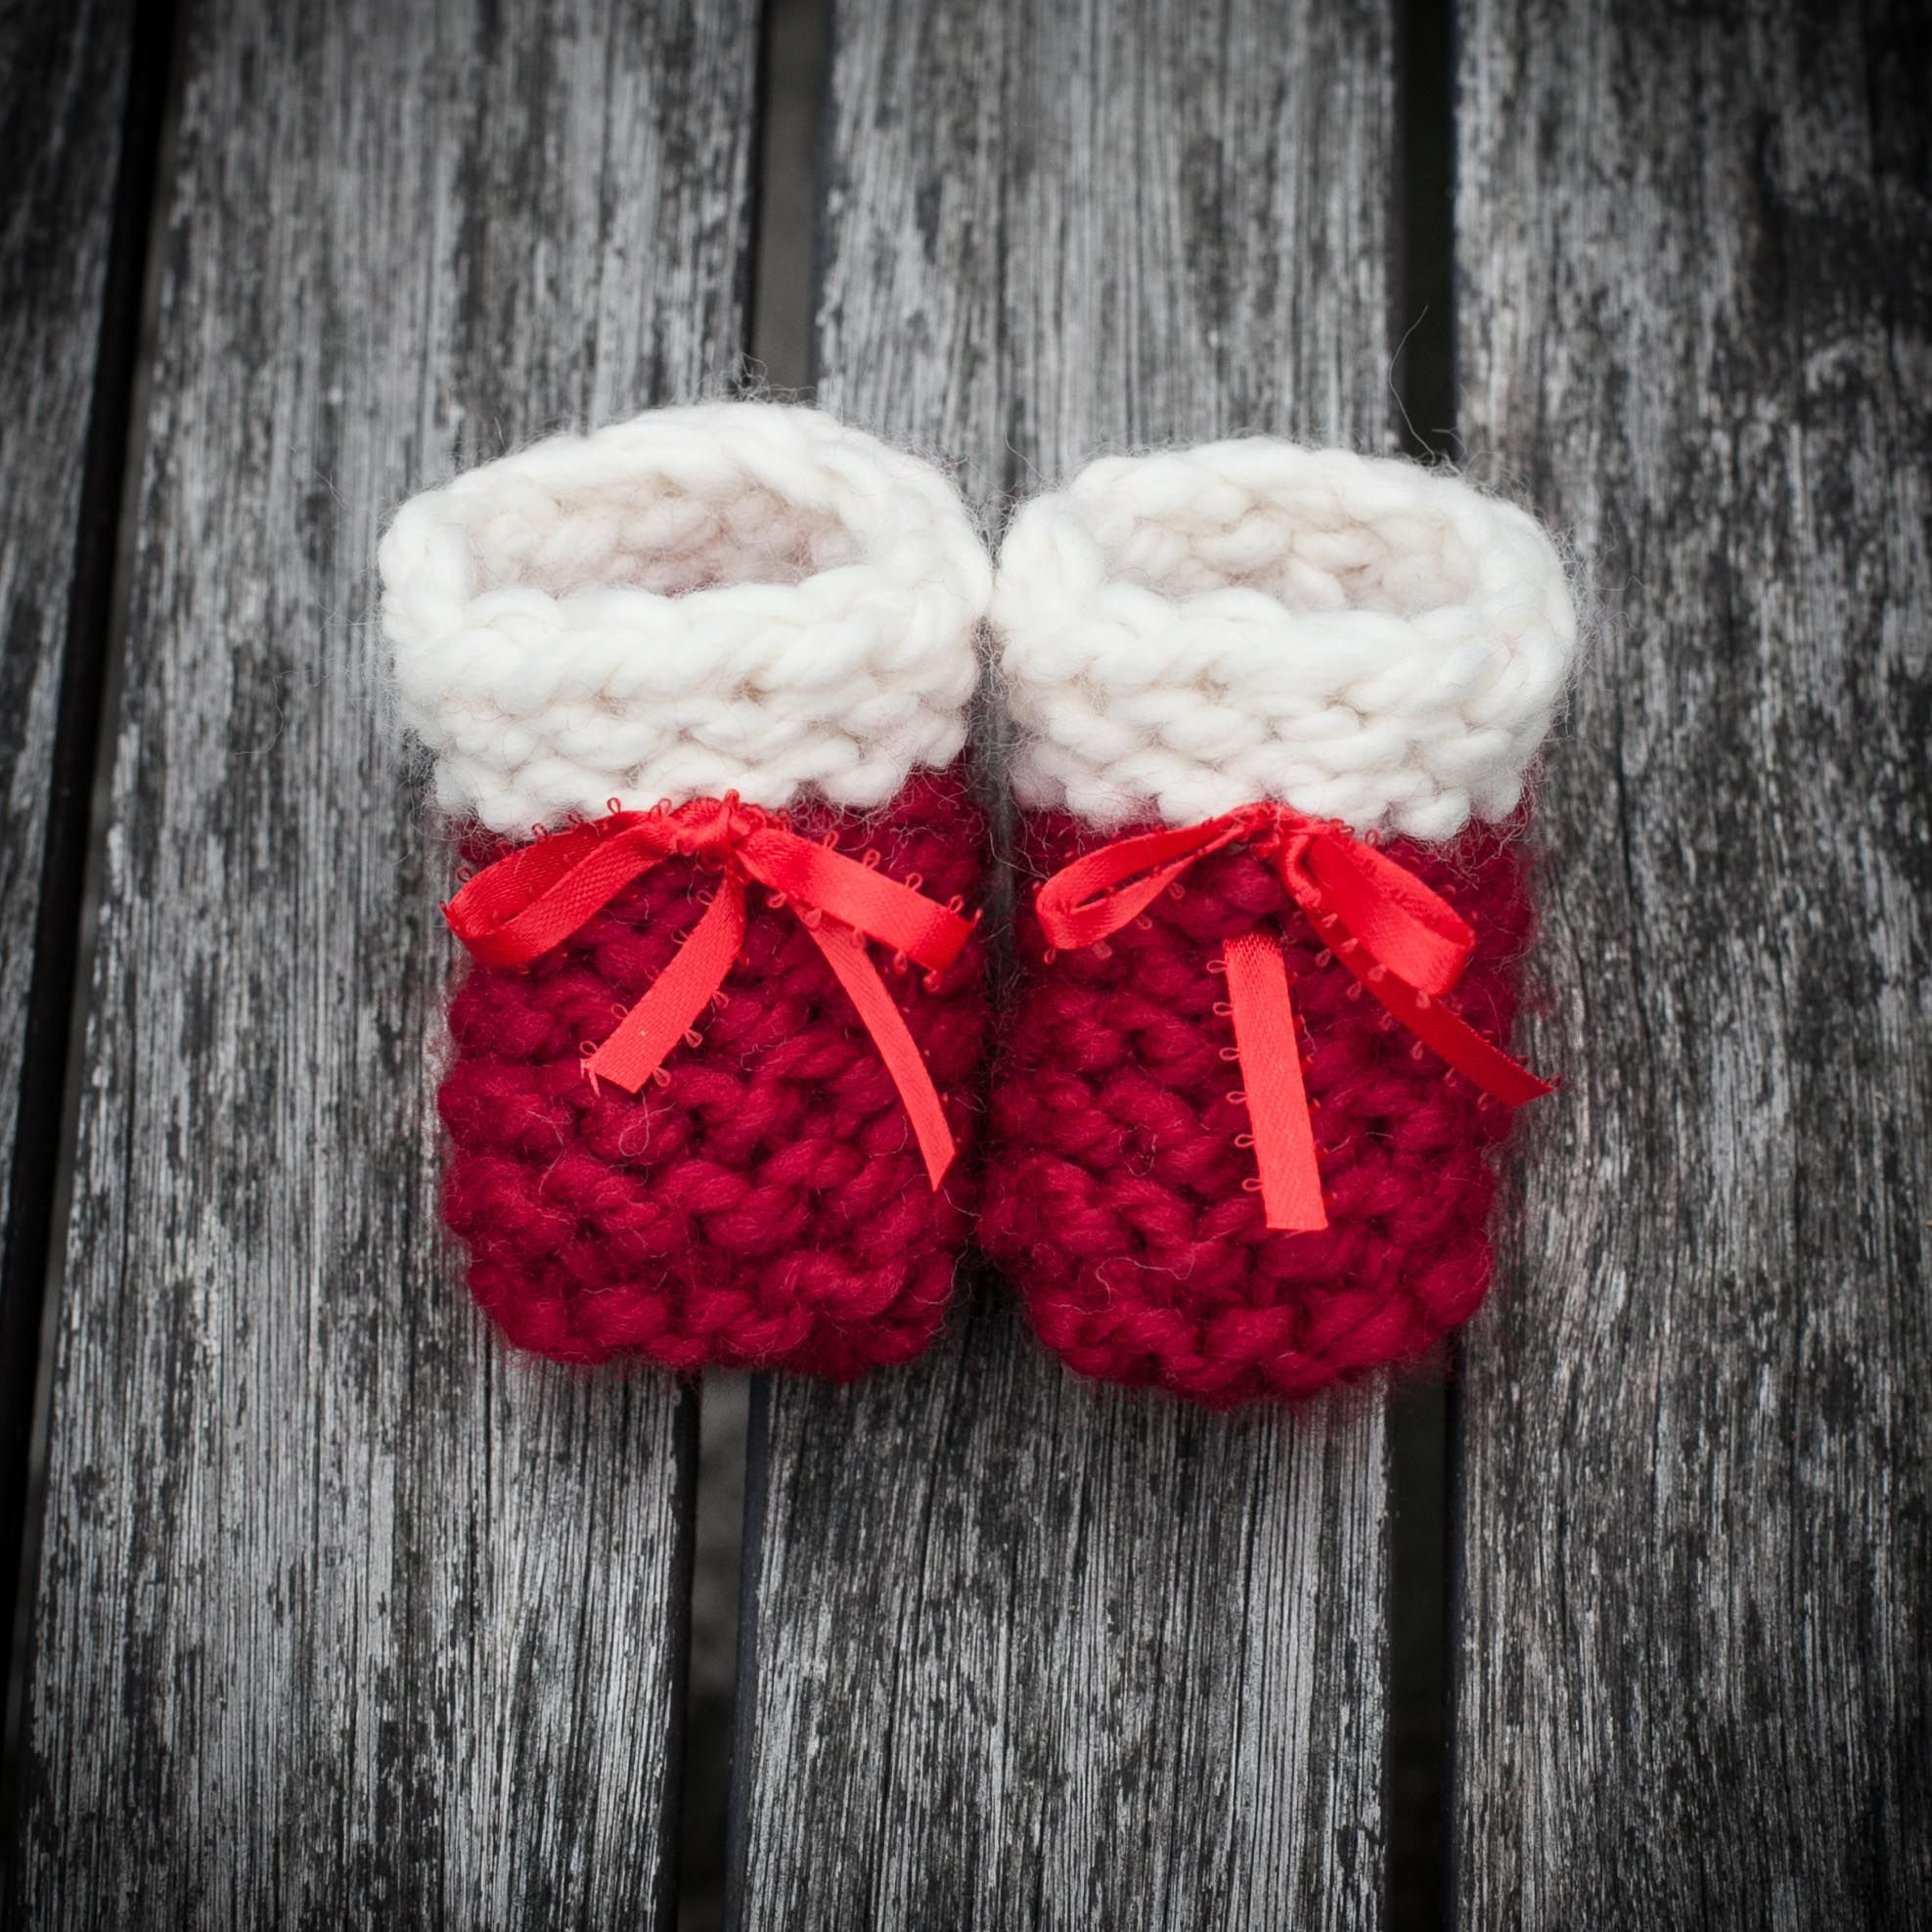 Loom knit baby booties shoes pattern beginner friendly garter loom knit baby booties shoes pattern beginner friendly garter stitch booties 4 sizes newborn to 12 months pdf pattern download bankloansurffo Image collections